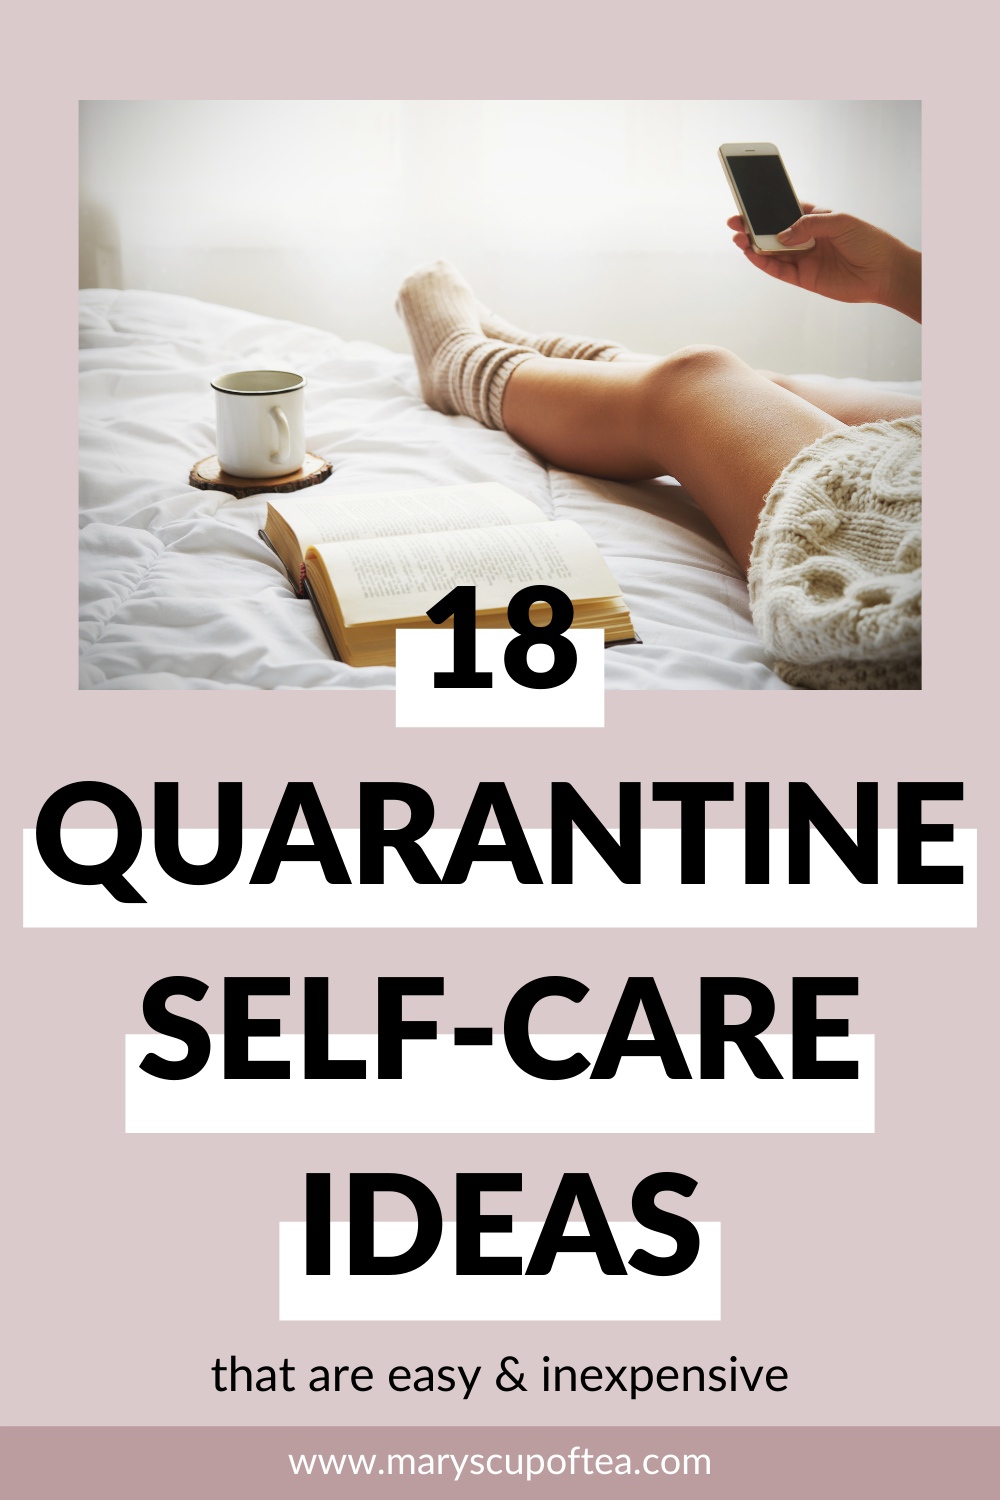 Make time for a quarantine self care day using some of these cheap and easy self care ideas. Click through to find out what they are! #quarantine #selfcare #selfcareideas #maryscupoftea